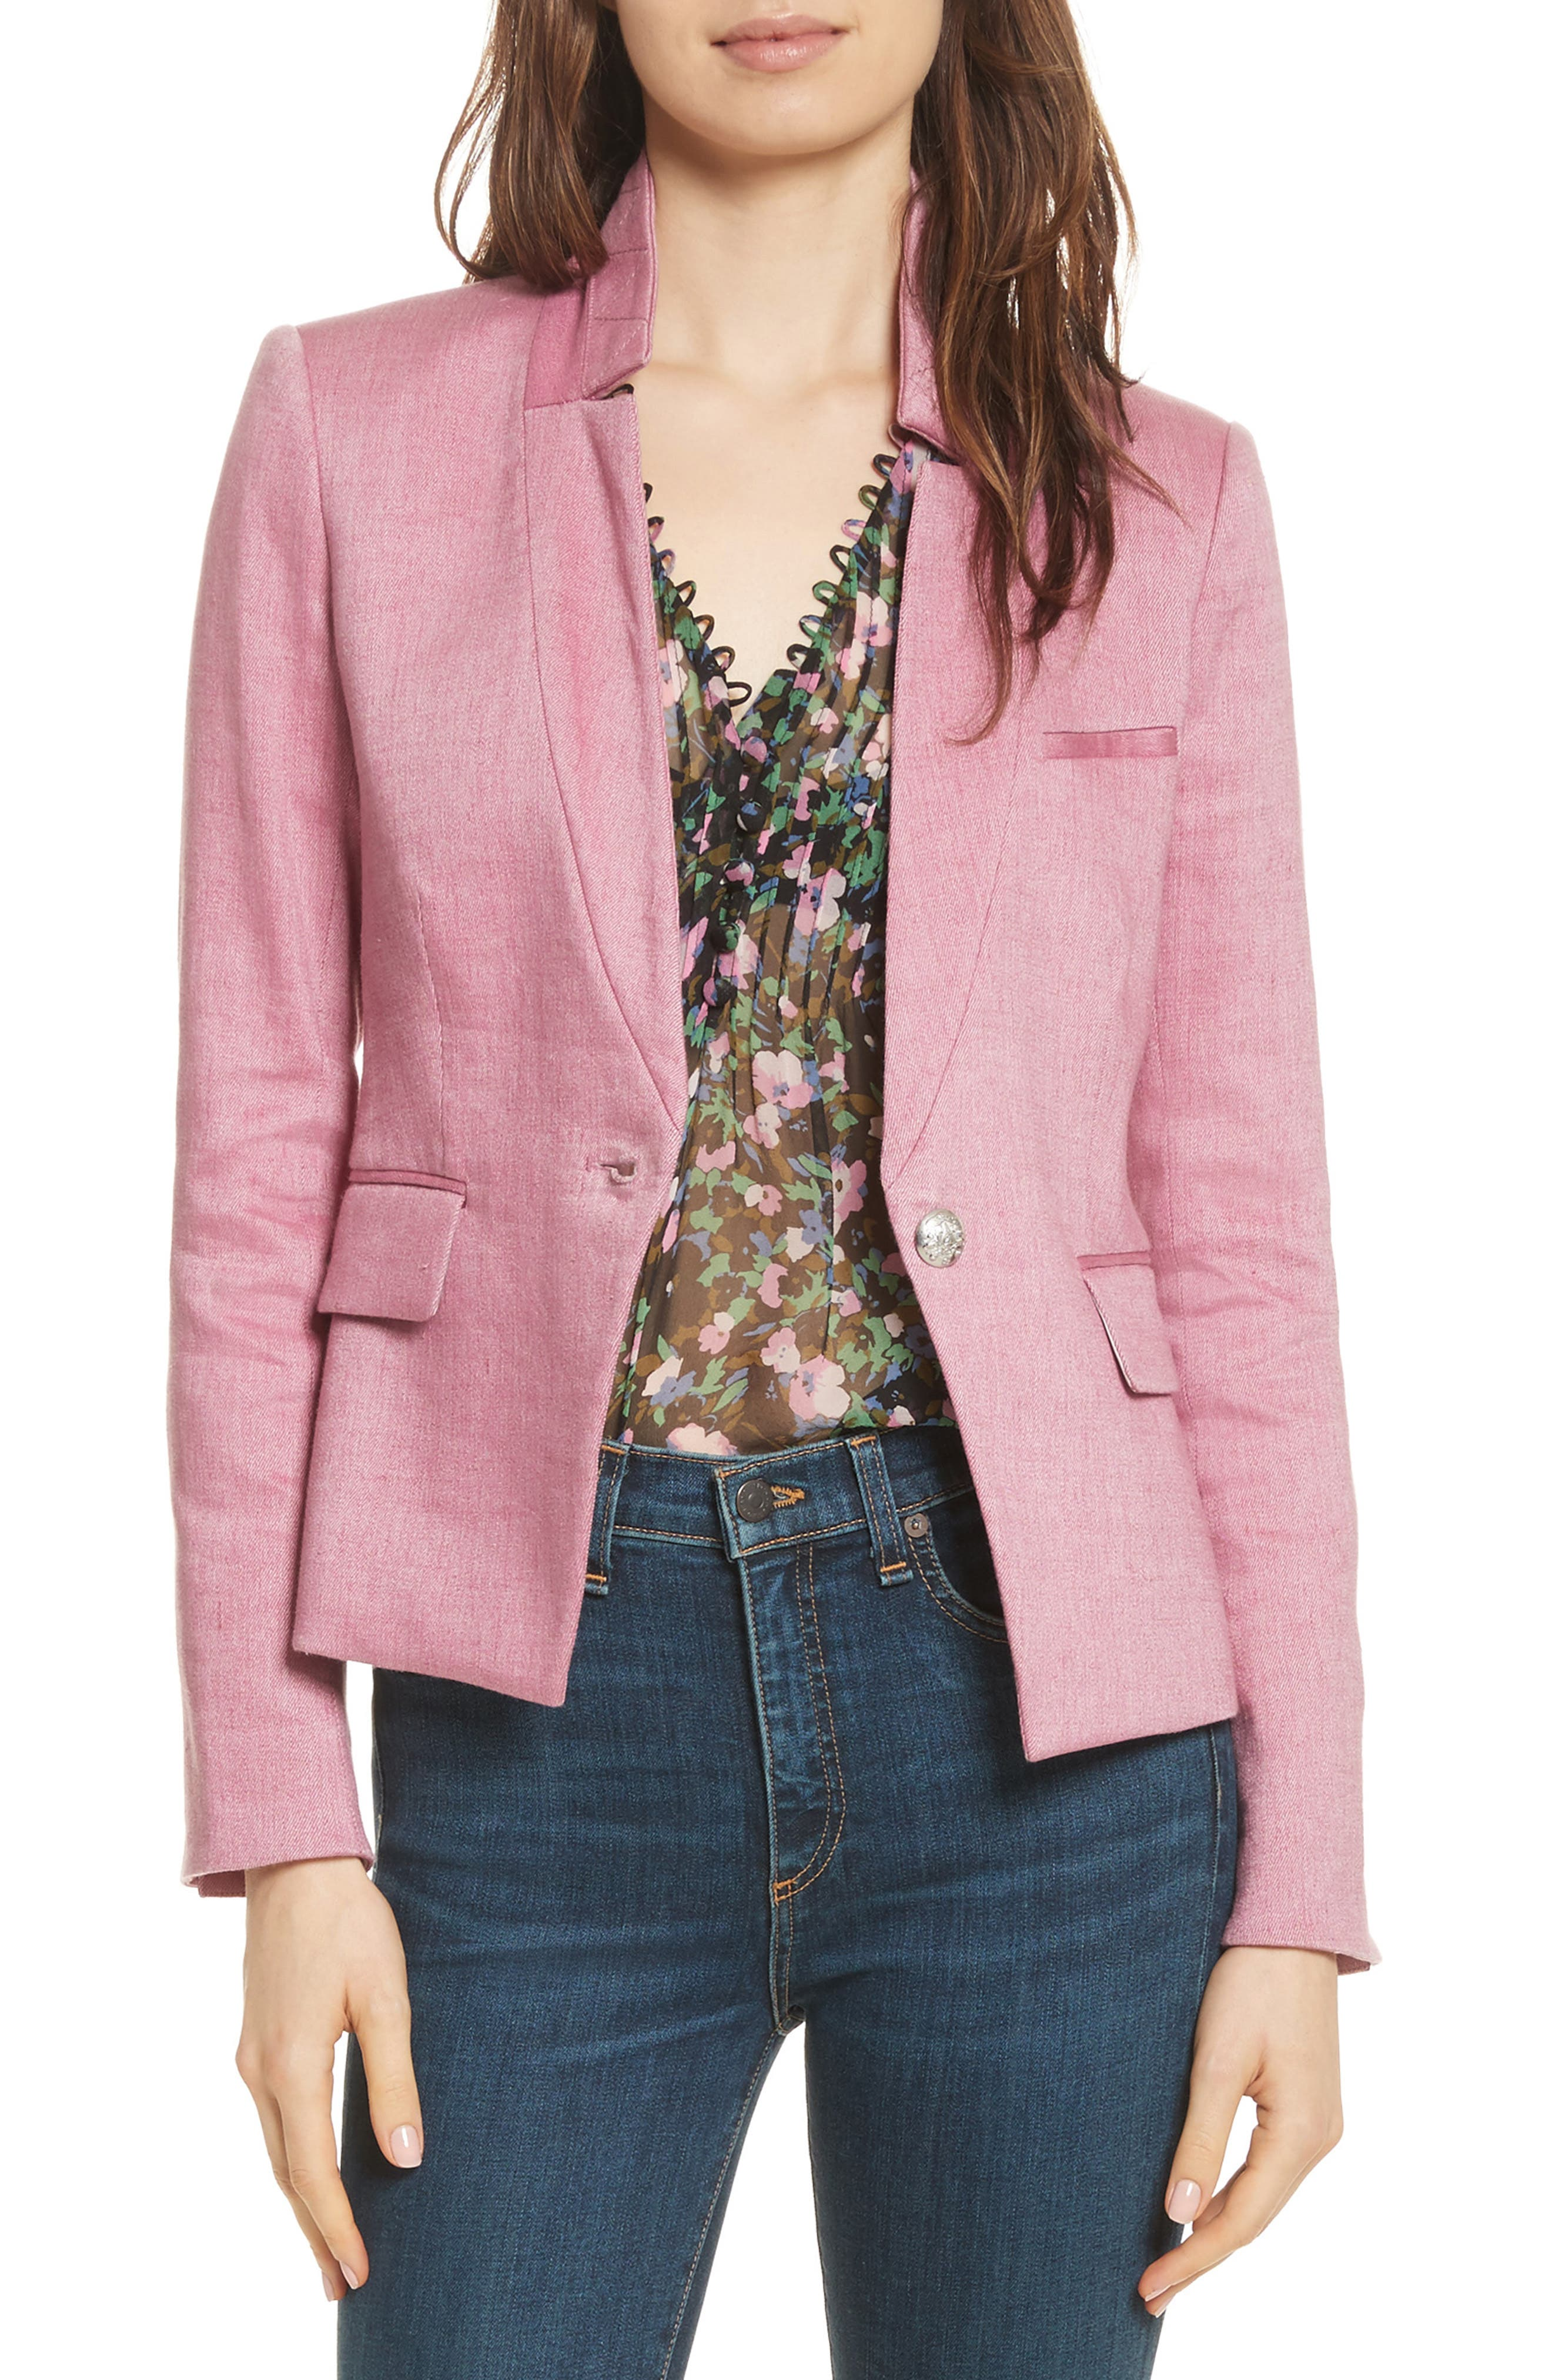 Veronica Beard Orchid Turn-Up Collar Jacket